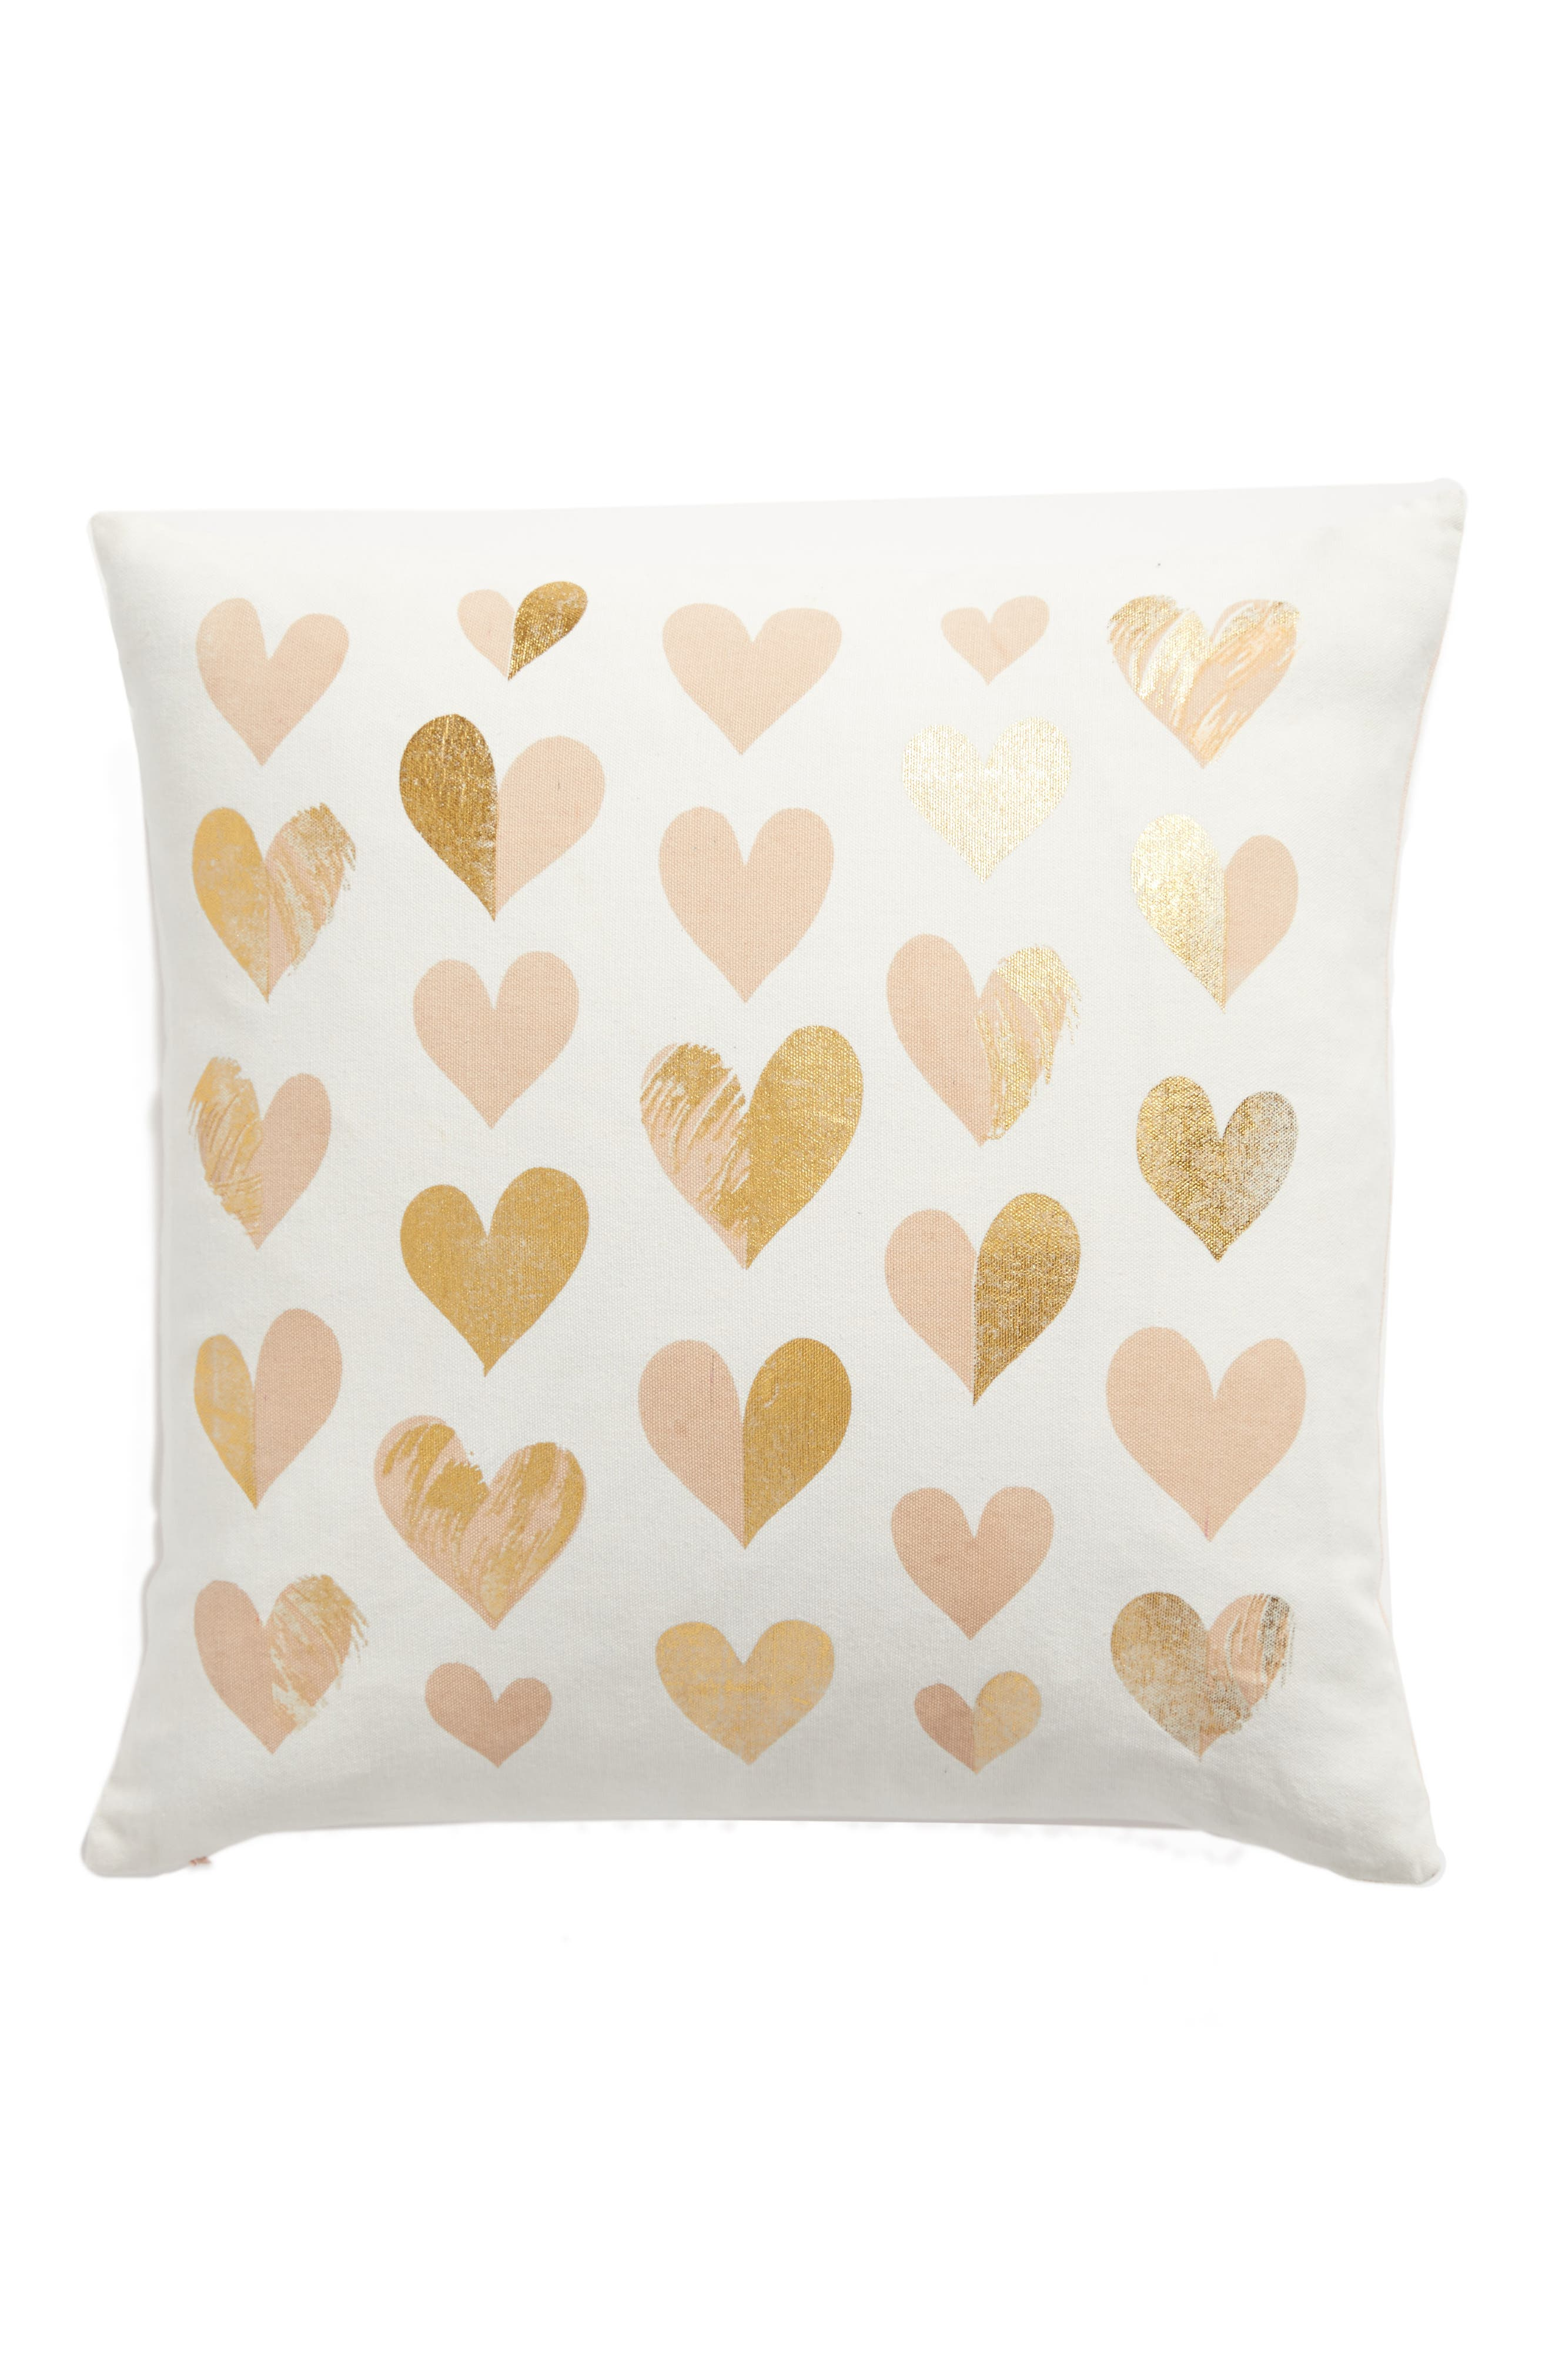 Lots of Love Accent Pillow,                         Main,                         color, Ivory